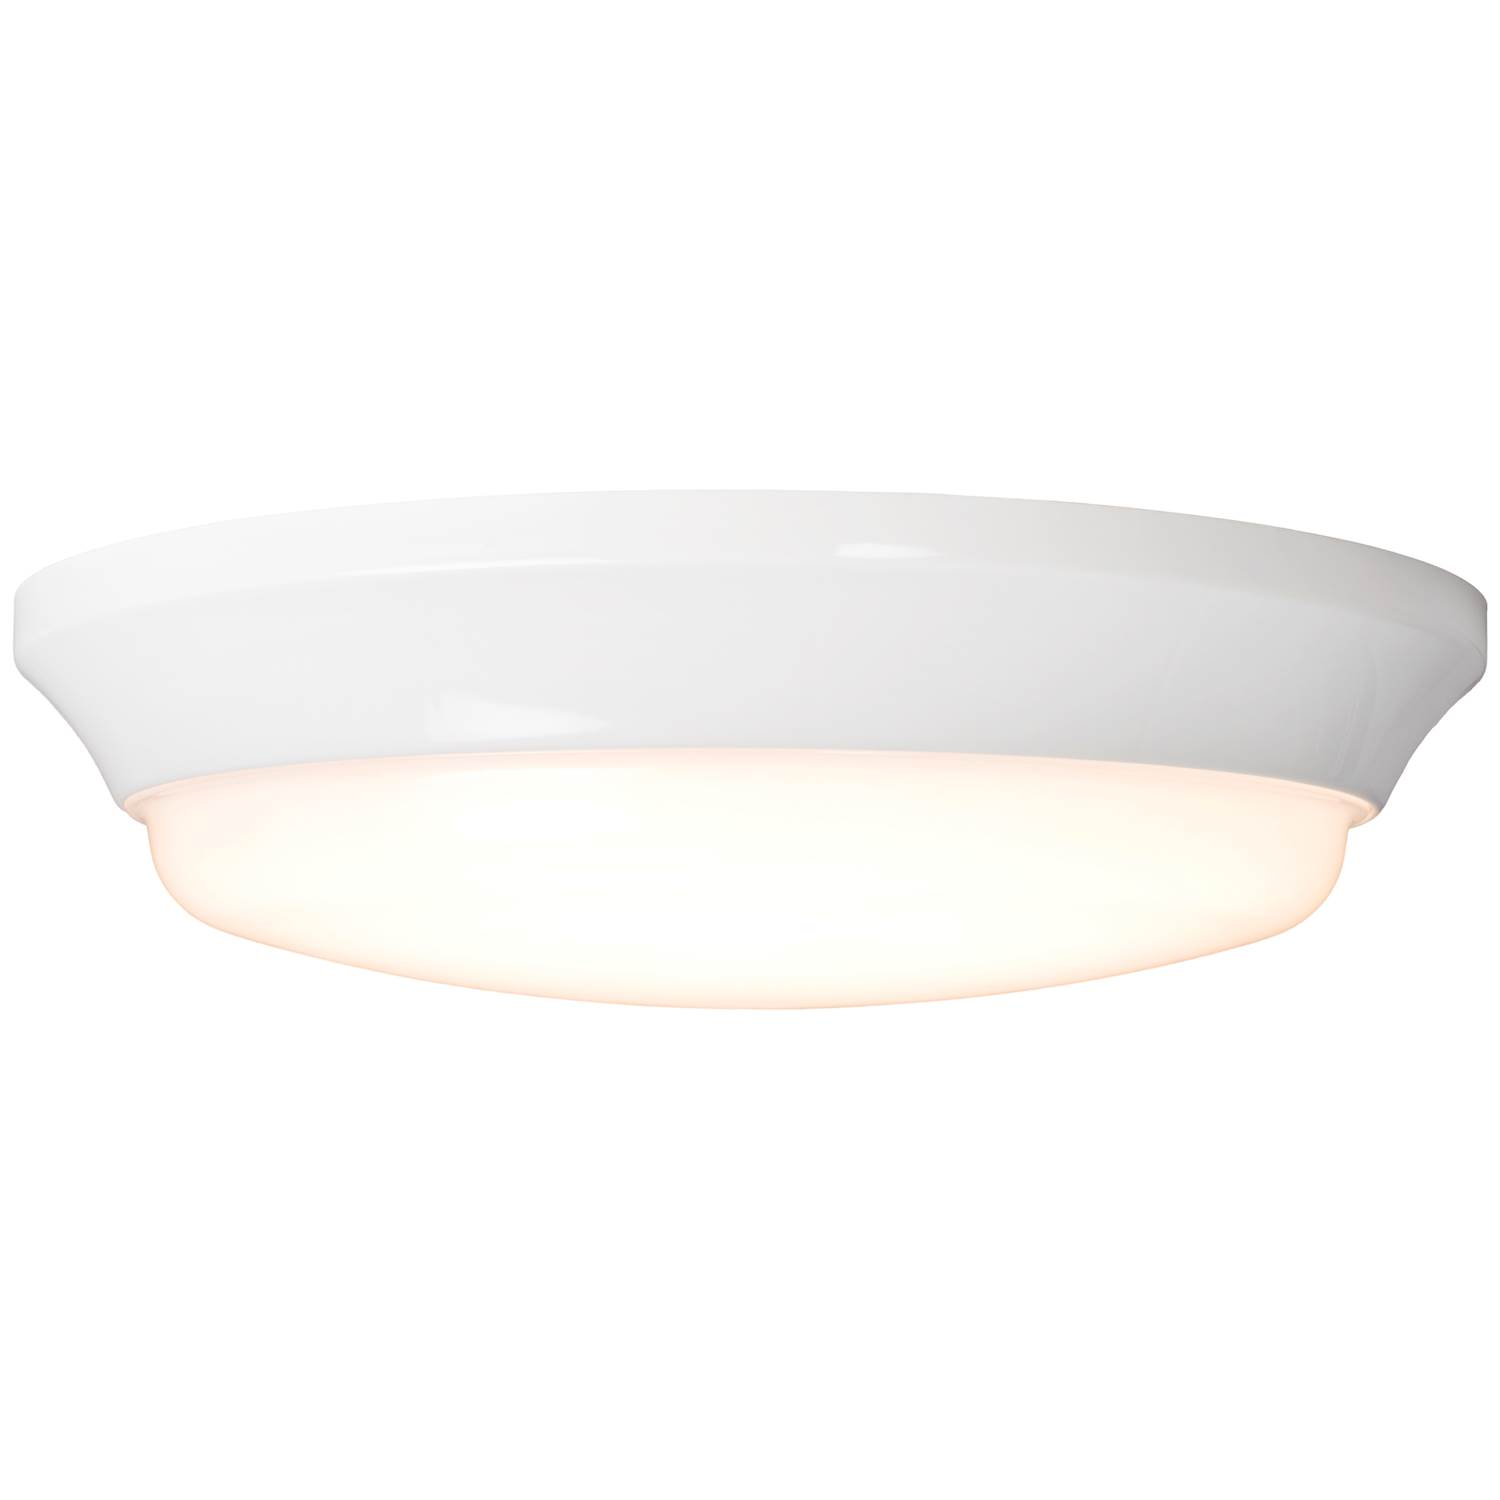 Airam Rio LED plafond Ø305mm